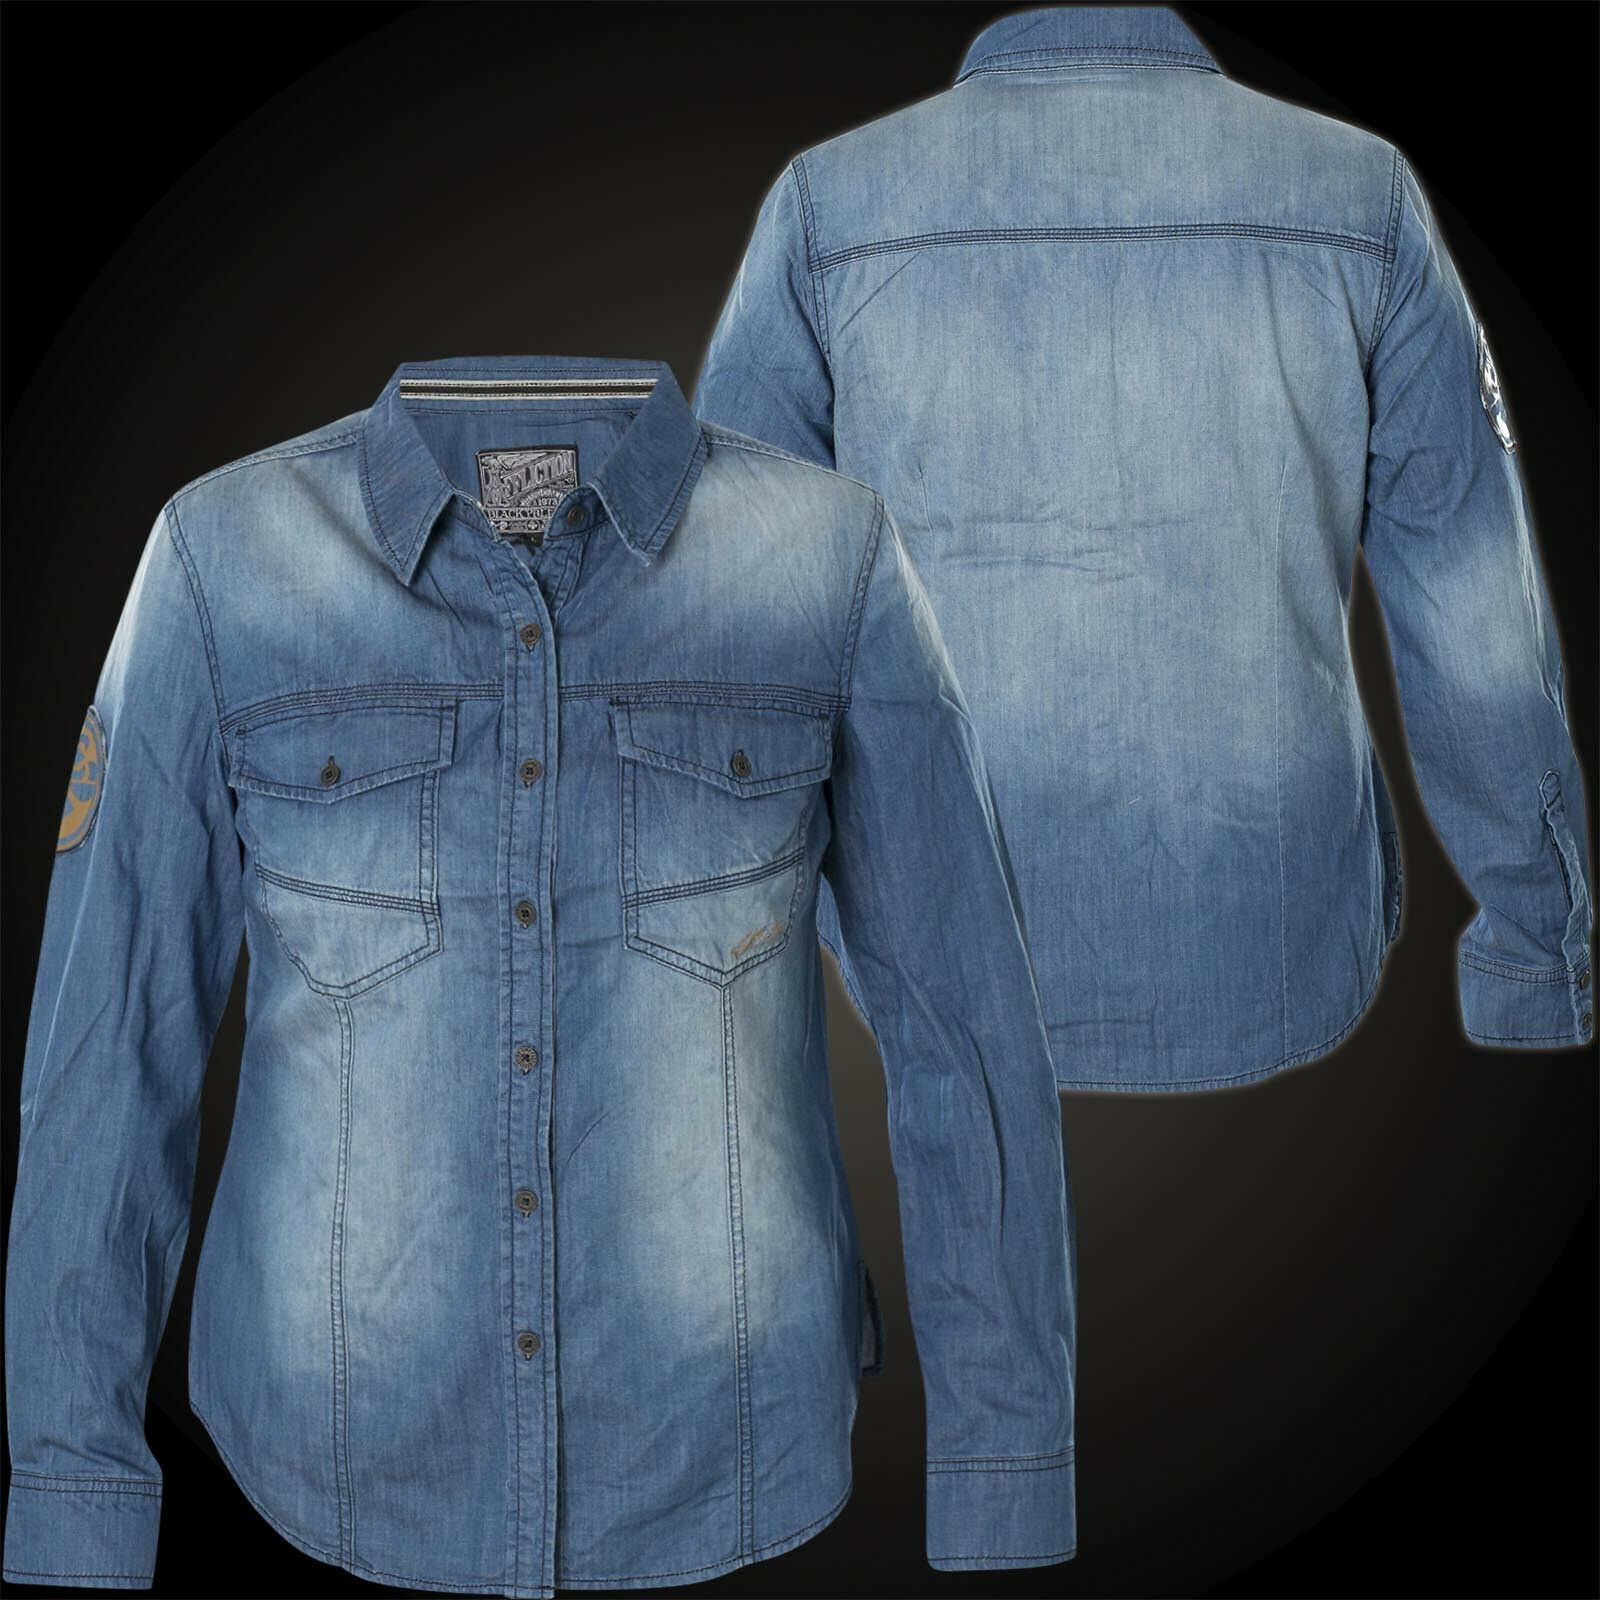 AFFLICTION Damen Jeanshemd Blau Dawn Blau